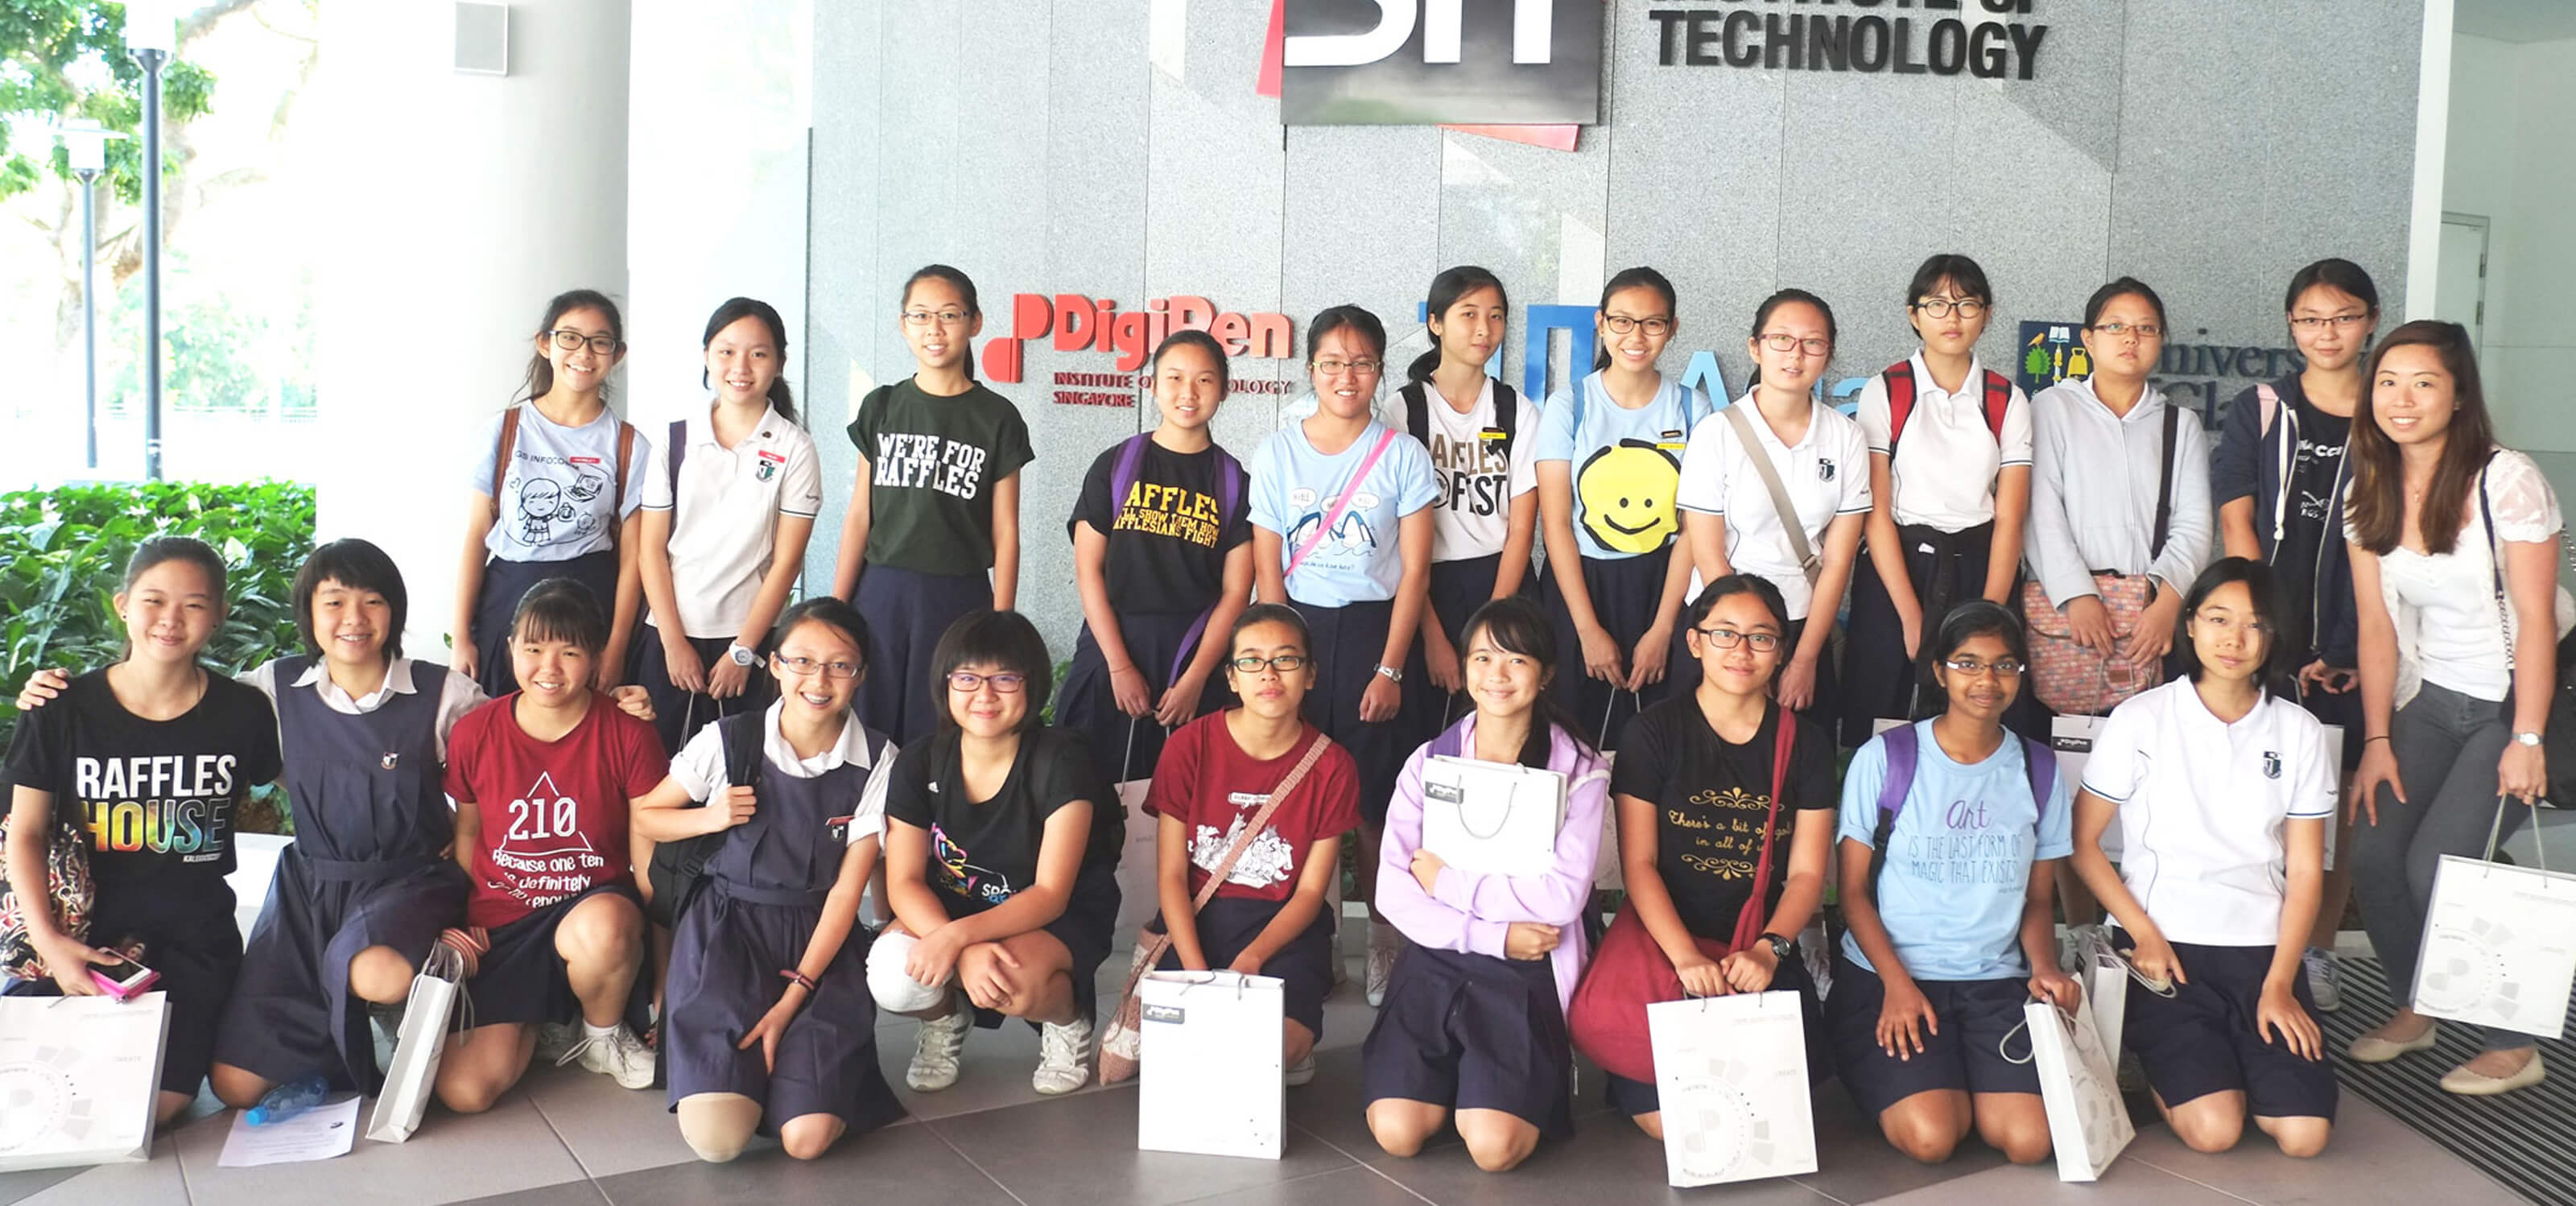 A group of schoolchildren pose for a picture in front of a building displaying the Singapore Institute of Technology logo